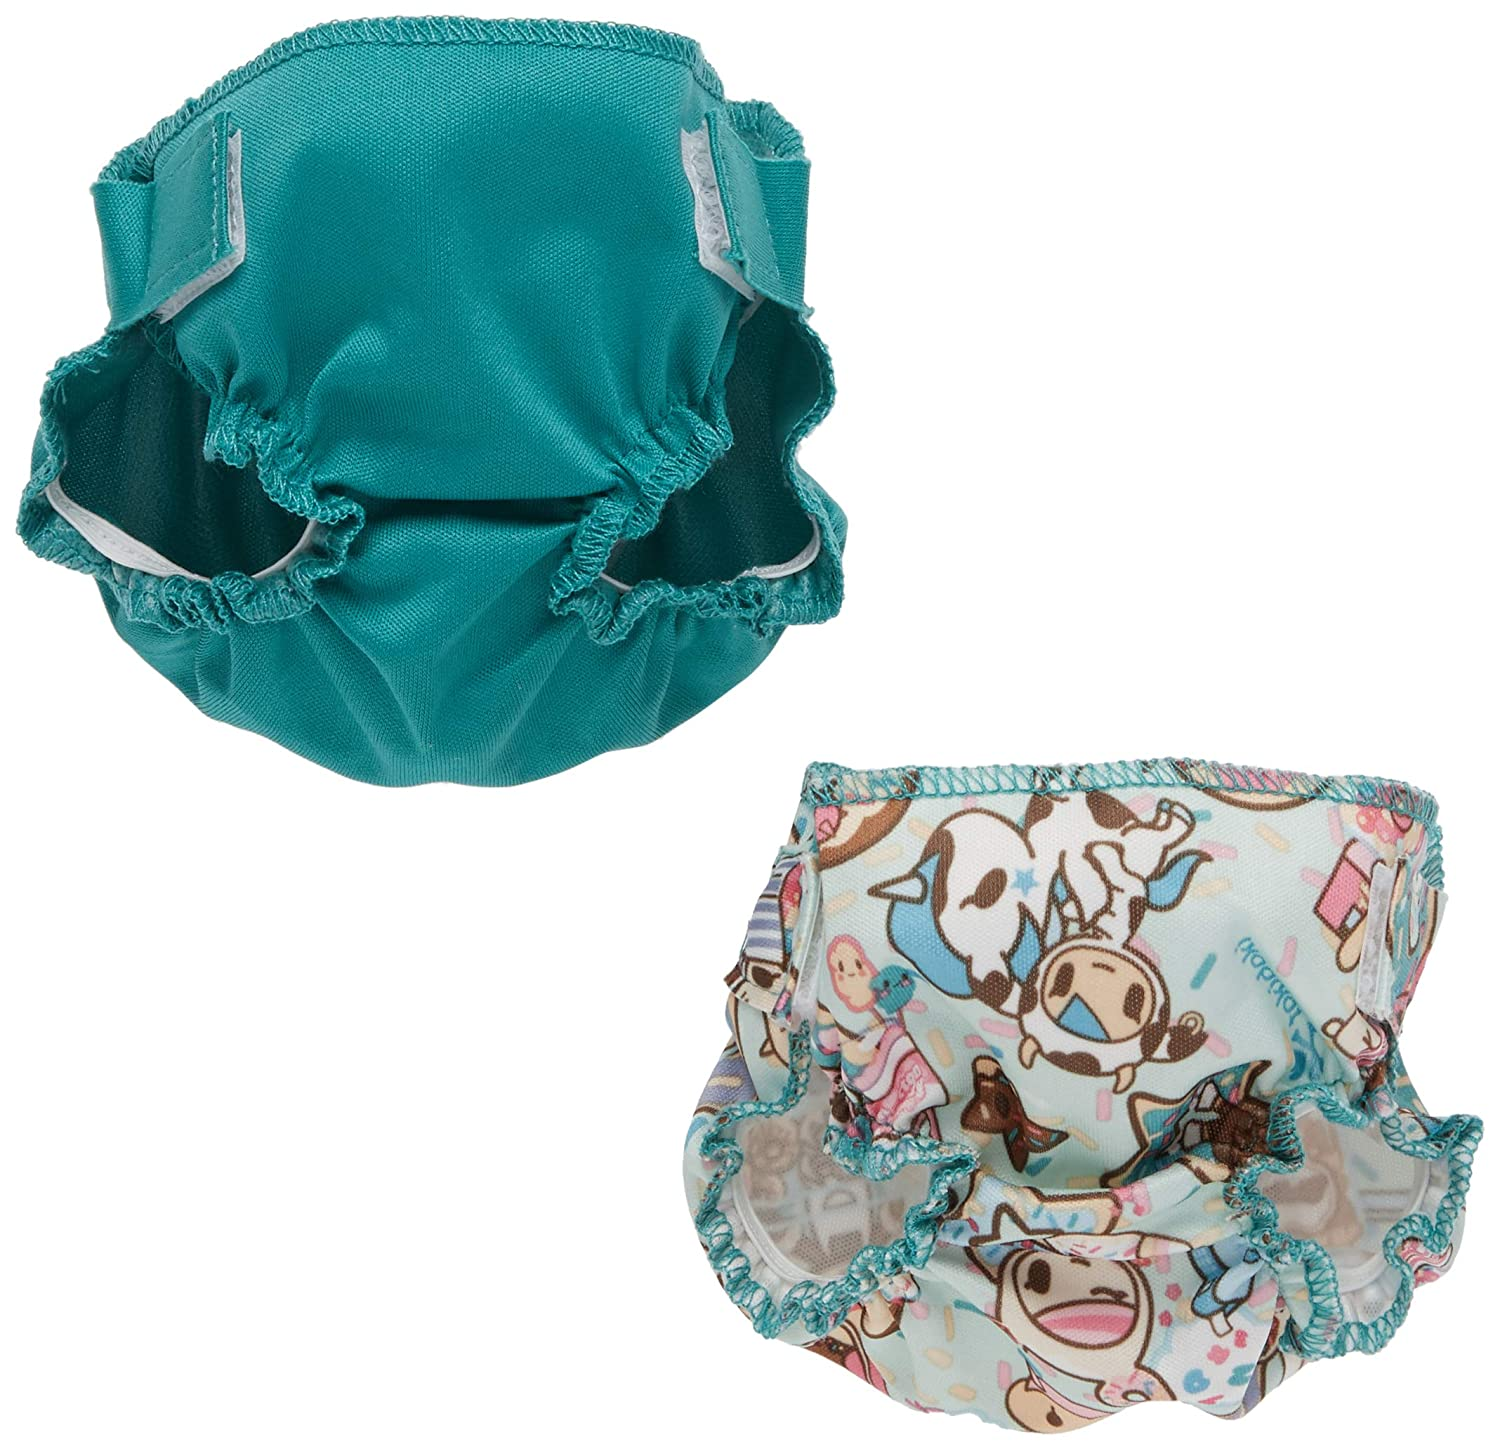 Rumparooz Doll Diaper Set TokiTreats /& Peacock